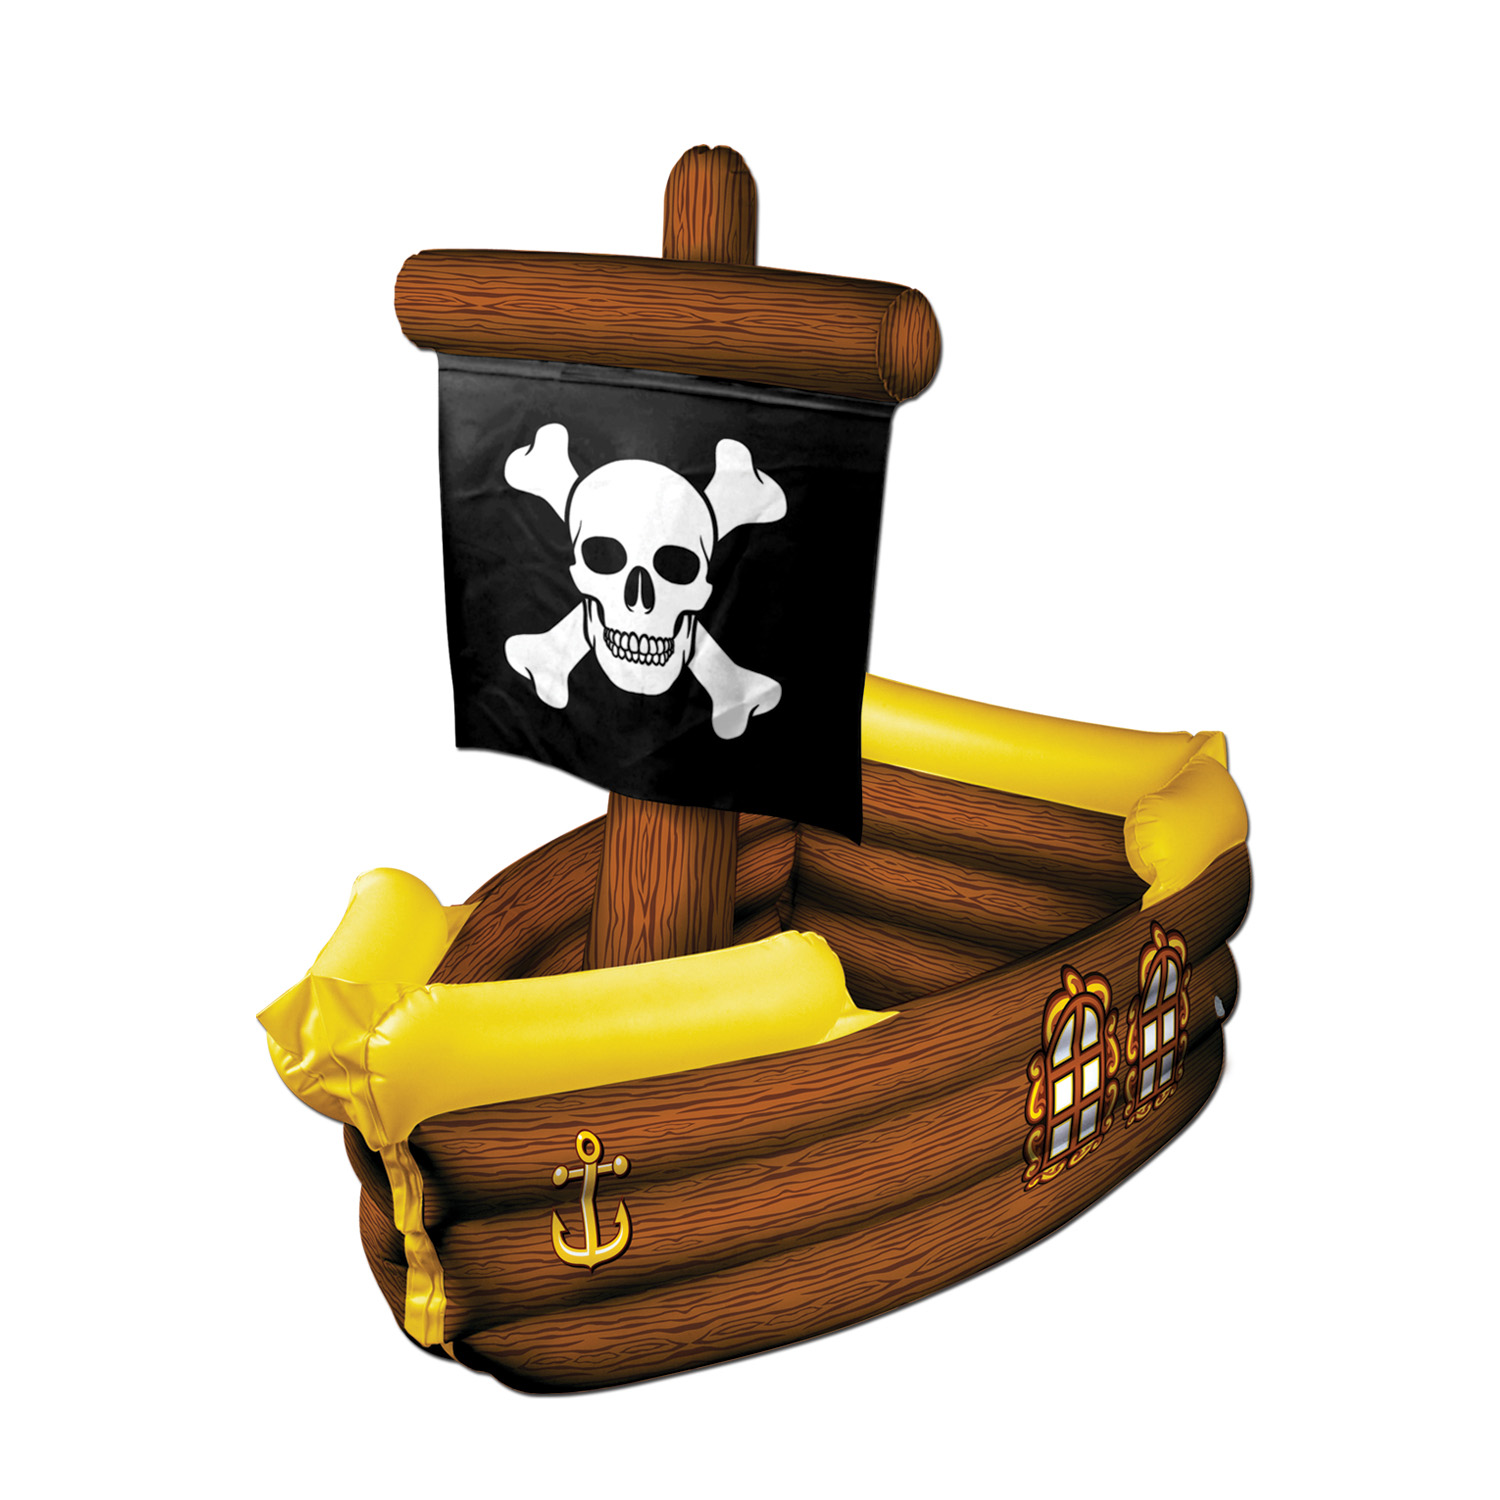 Inflatable Pirate Ship Cooler (Pack of 1) pirate ship, cooler, ship cooler, inflatable cooler, pirate